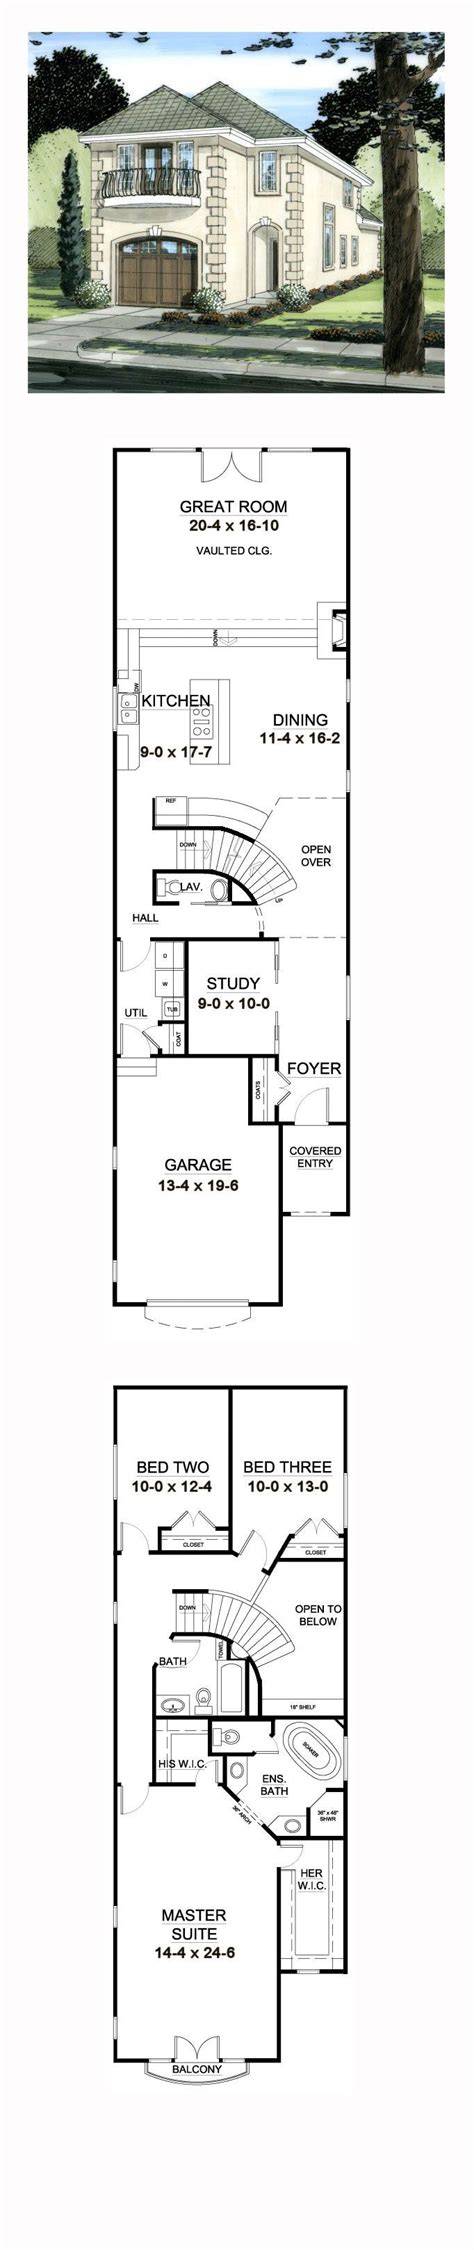 narrow lot floor plans florida house plan 99997 narrow lot house plans and bedrooms